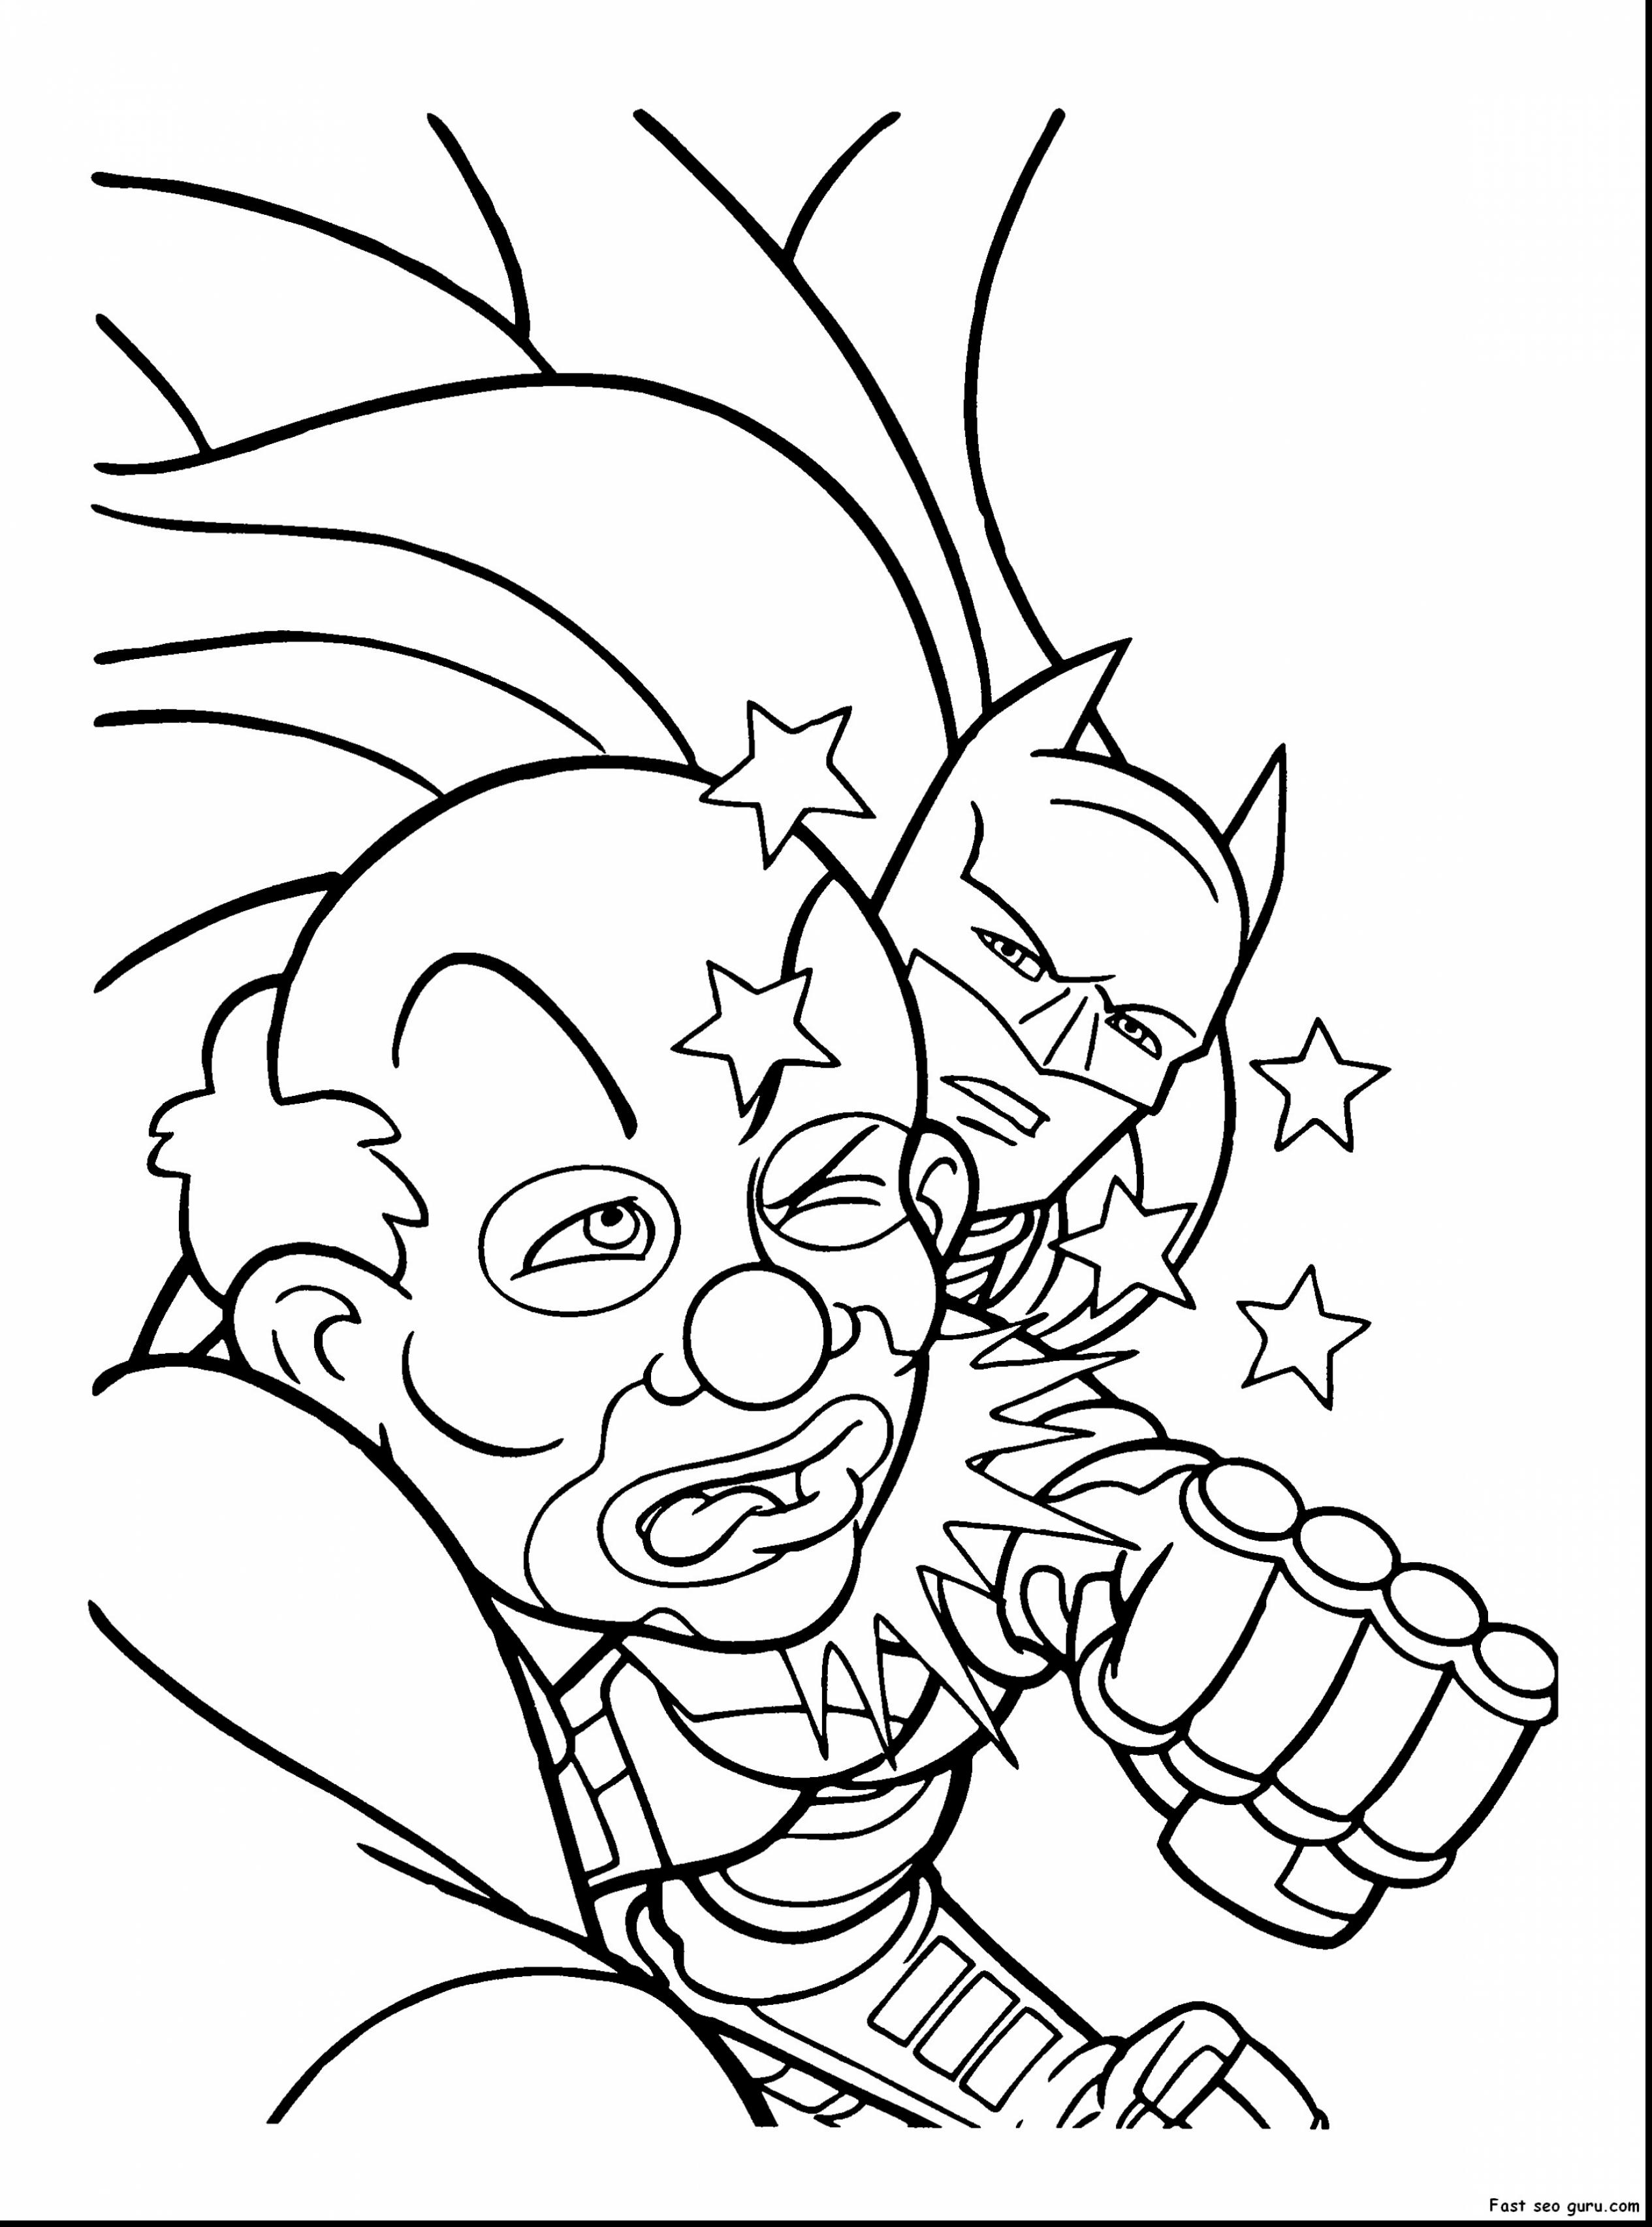 2530x3410 Surprising Joker Coloring Pages Printable With Harley Quinn